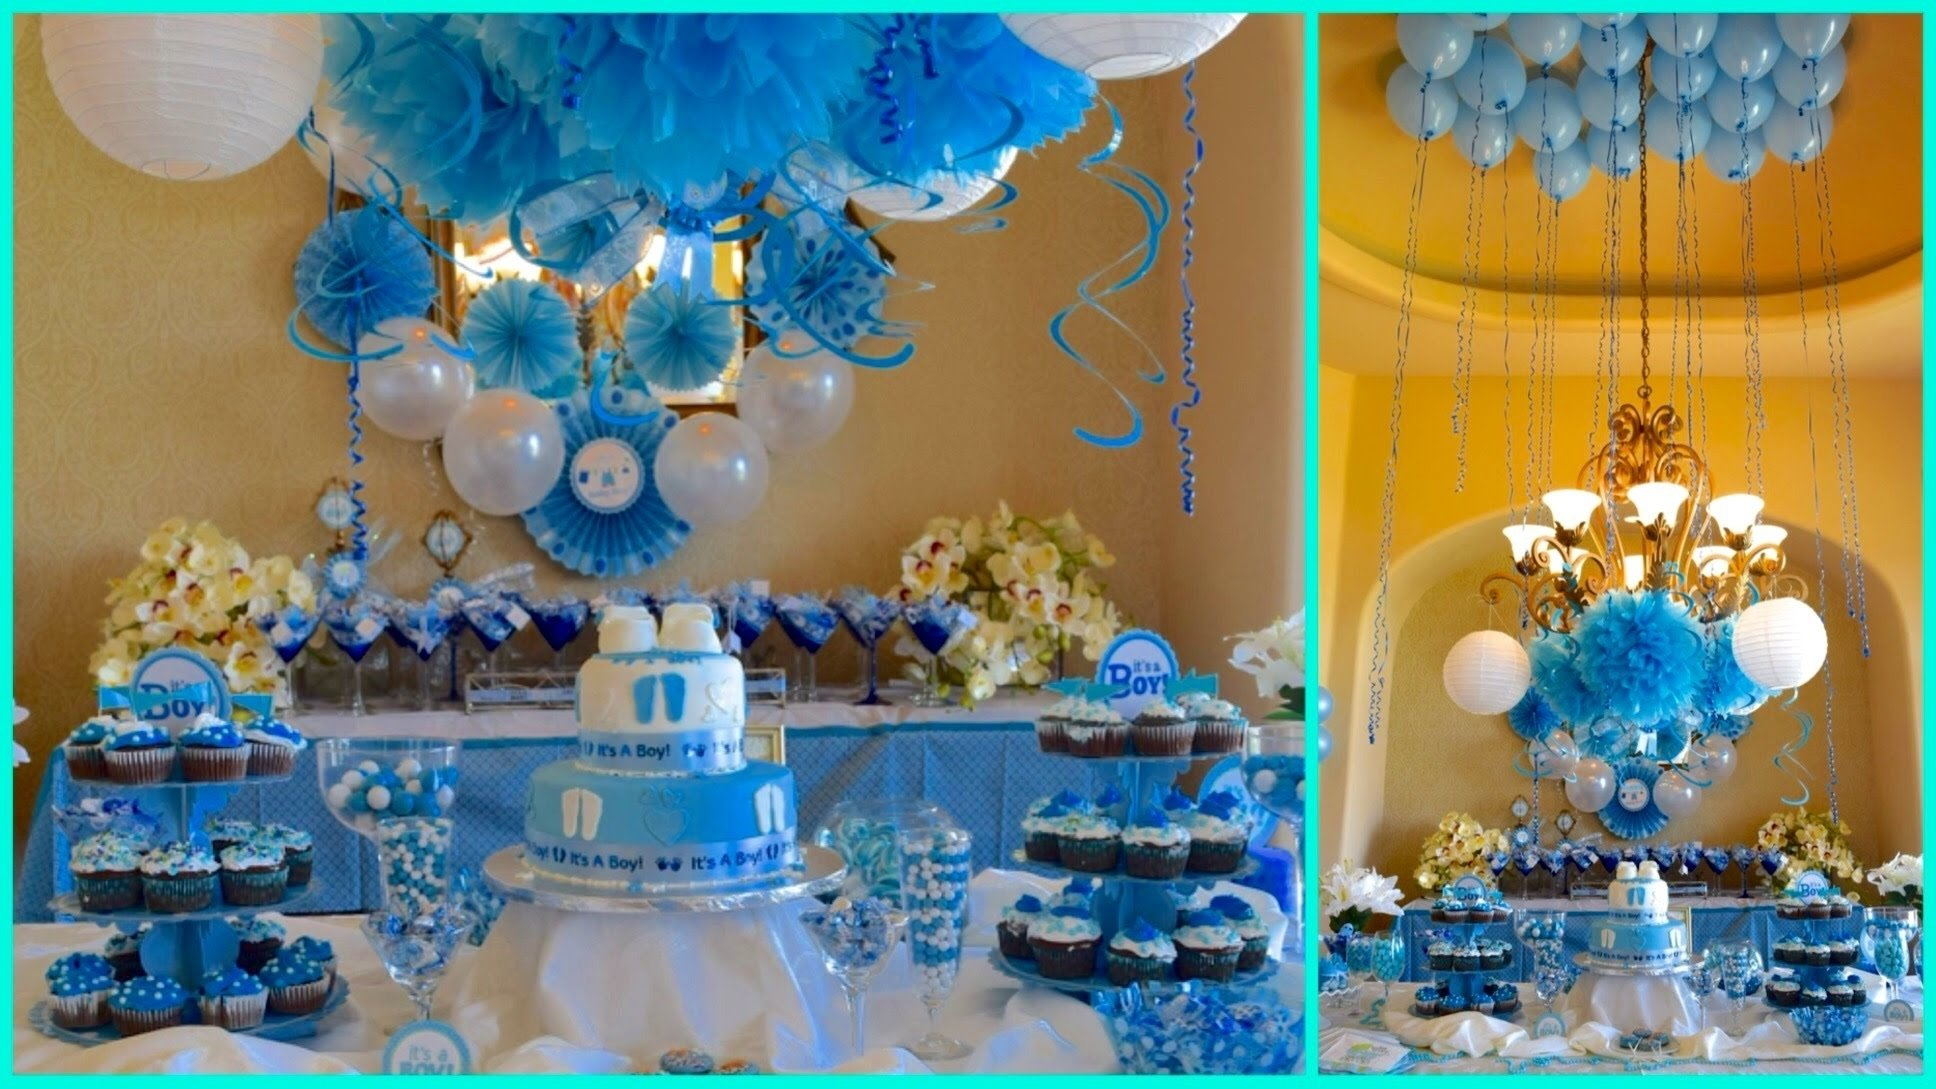 10 Amazing Baby Shower Ideas For Boy baby shower ideas for boy blue theme youtube 21 2020